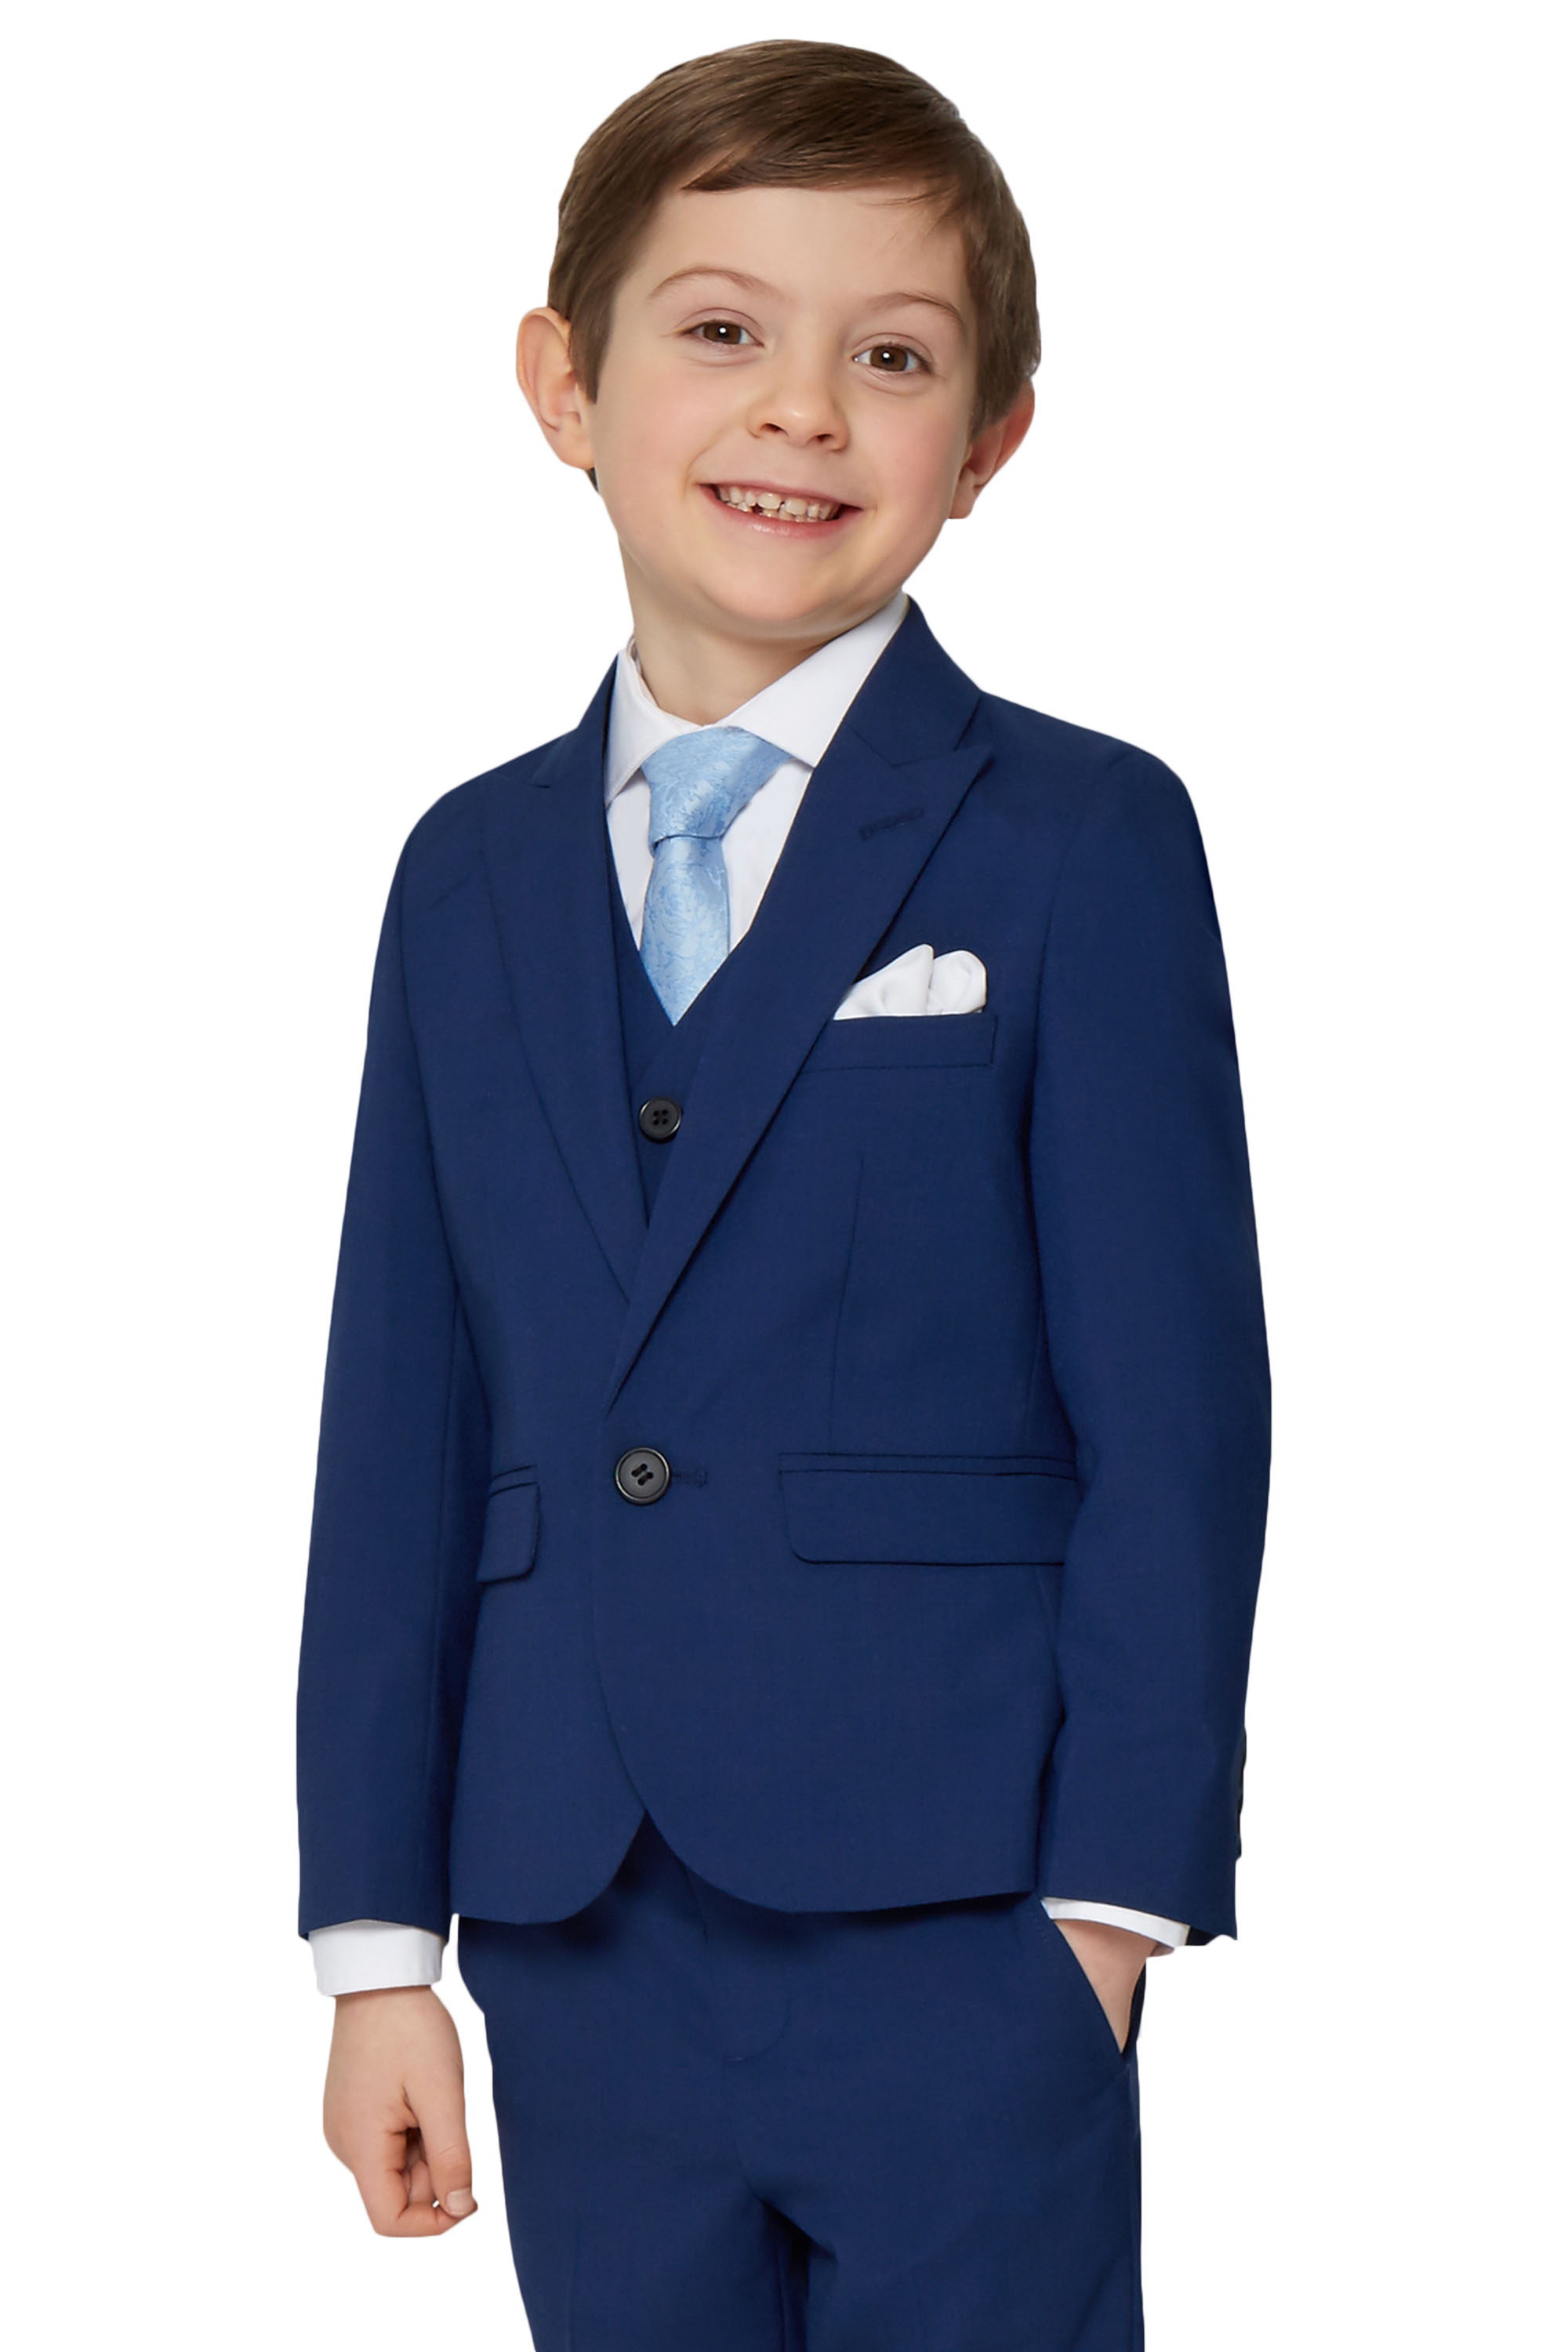 it24-ieop.gq: blue blazer kids. Boys Velvet Suits Coat Velvet Royal Blue Blazer Size 5 Jacket. Yuanlu Boys' Formal Suits Blazer Jacket Coat for Kids. by Yuanlu. $ - $ $ 29 $ 52 99 Prime. FREE Shipping on eligible orders. Some sizes/colors are Prime eligible. Save $ with coupon.